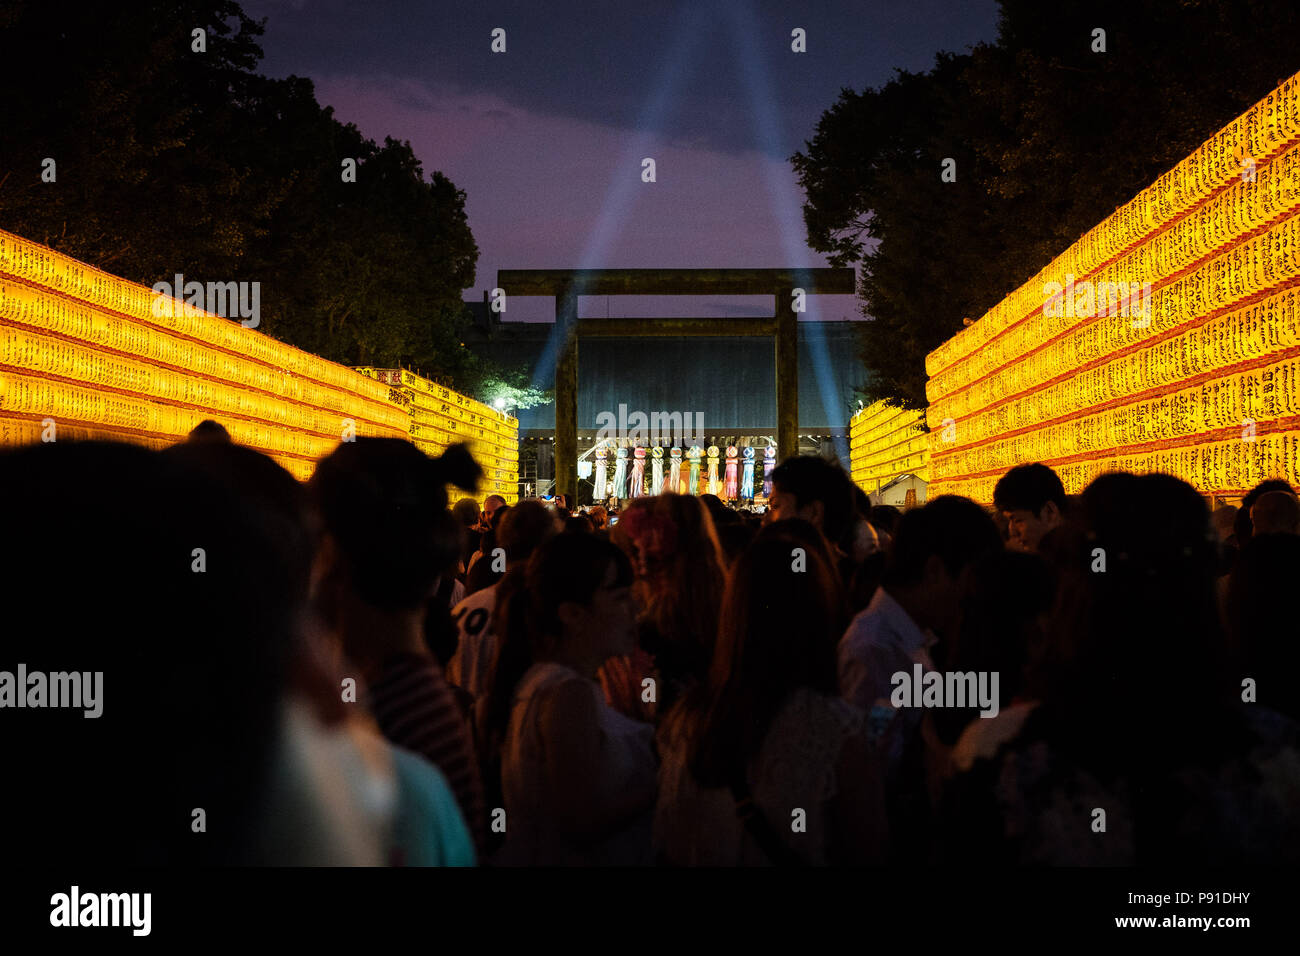 Tokyo, Japan, 13 July 2018. Visitors walk past lit paper lanterns during the Mitama Matsuri summer festival at Yasukuni Shrine on July 13, 2018 in Tokyo, Japan. The four-day traditional festival takes place during Tokyo's Bon period in July attracting about 300,000 visitors, according to the shrine. July 13, 2018 Credit: Nicolas Datiche/AFLO/Alamy Live News - Stock Image